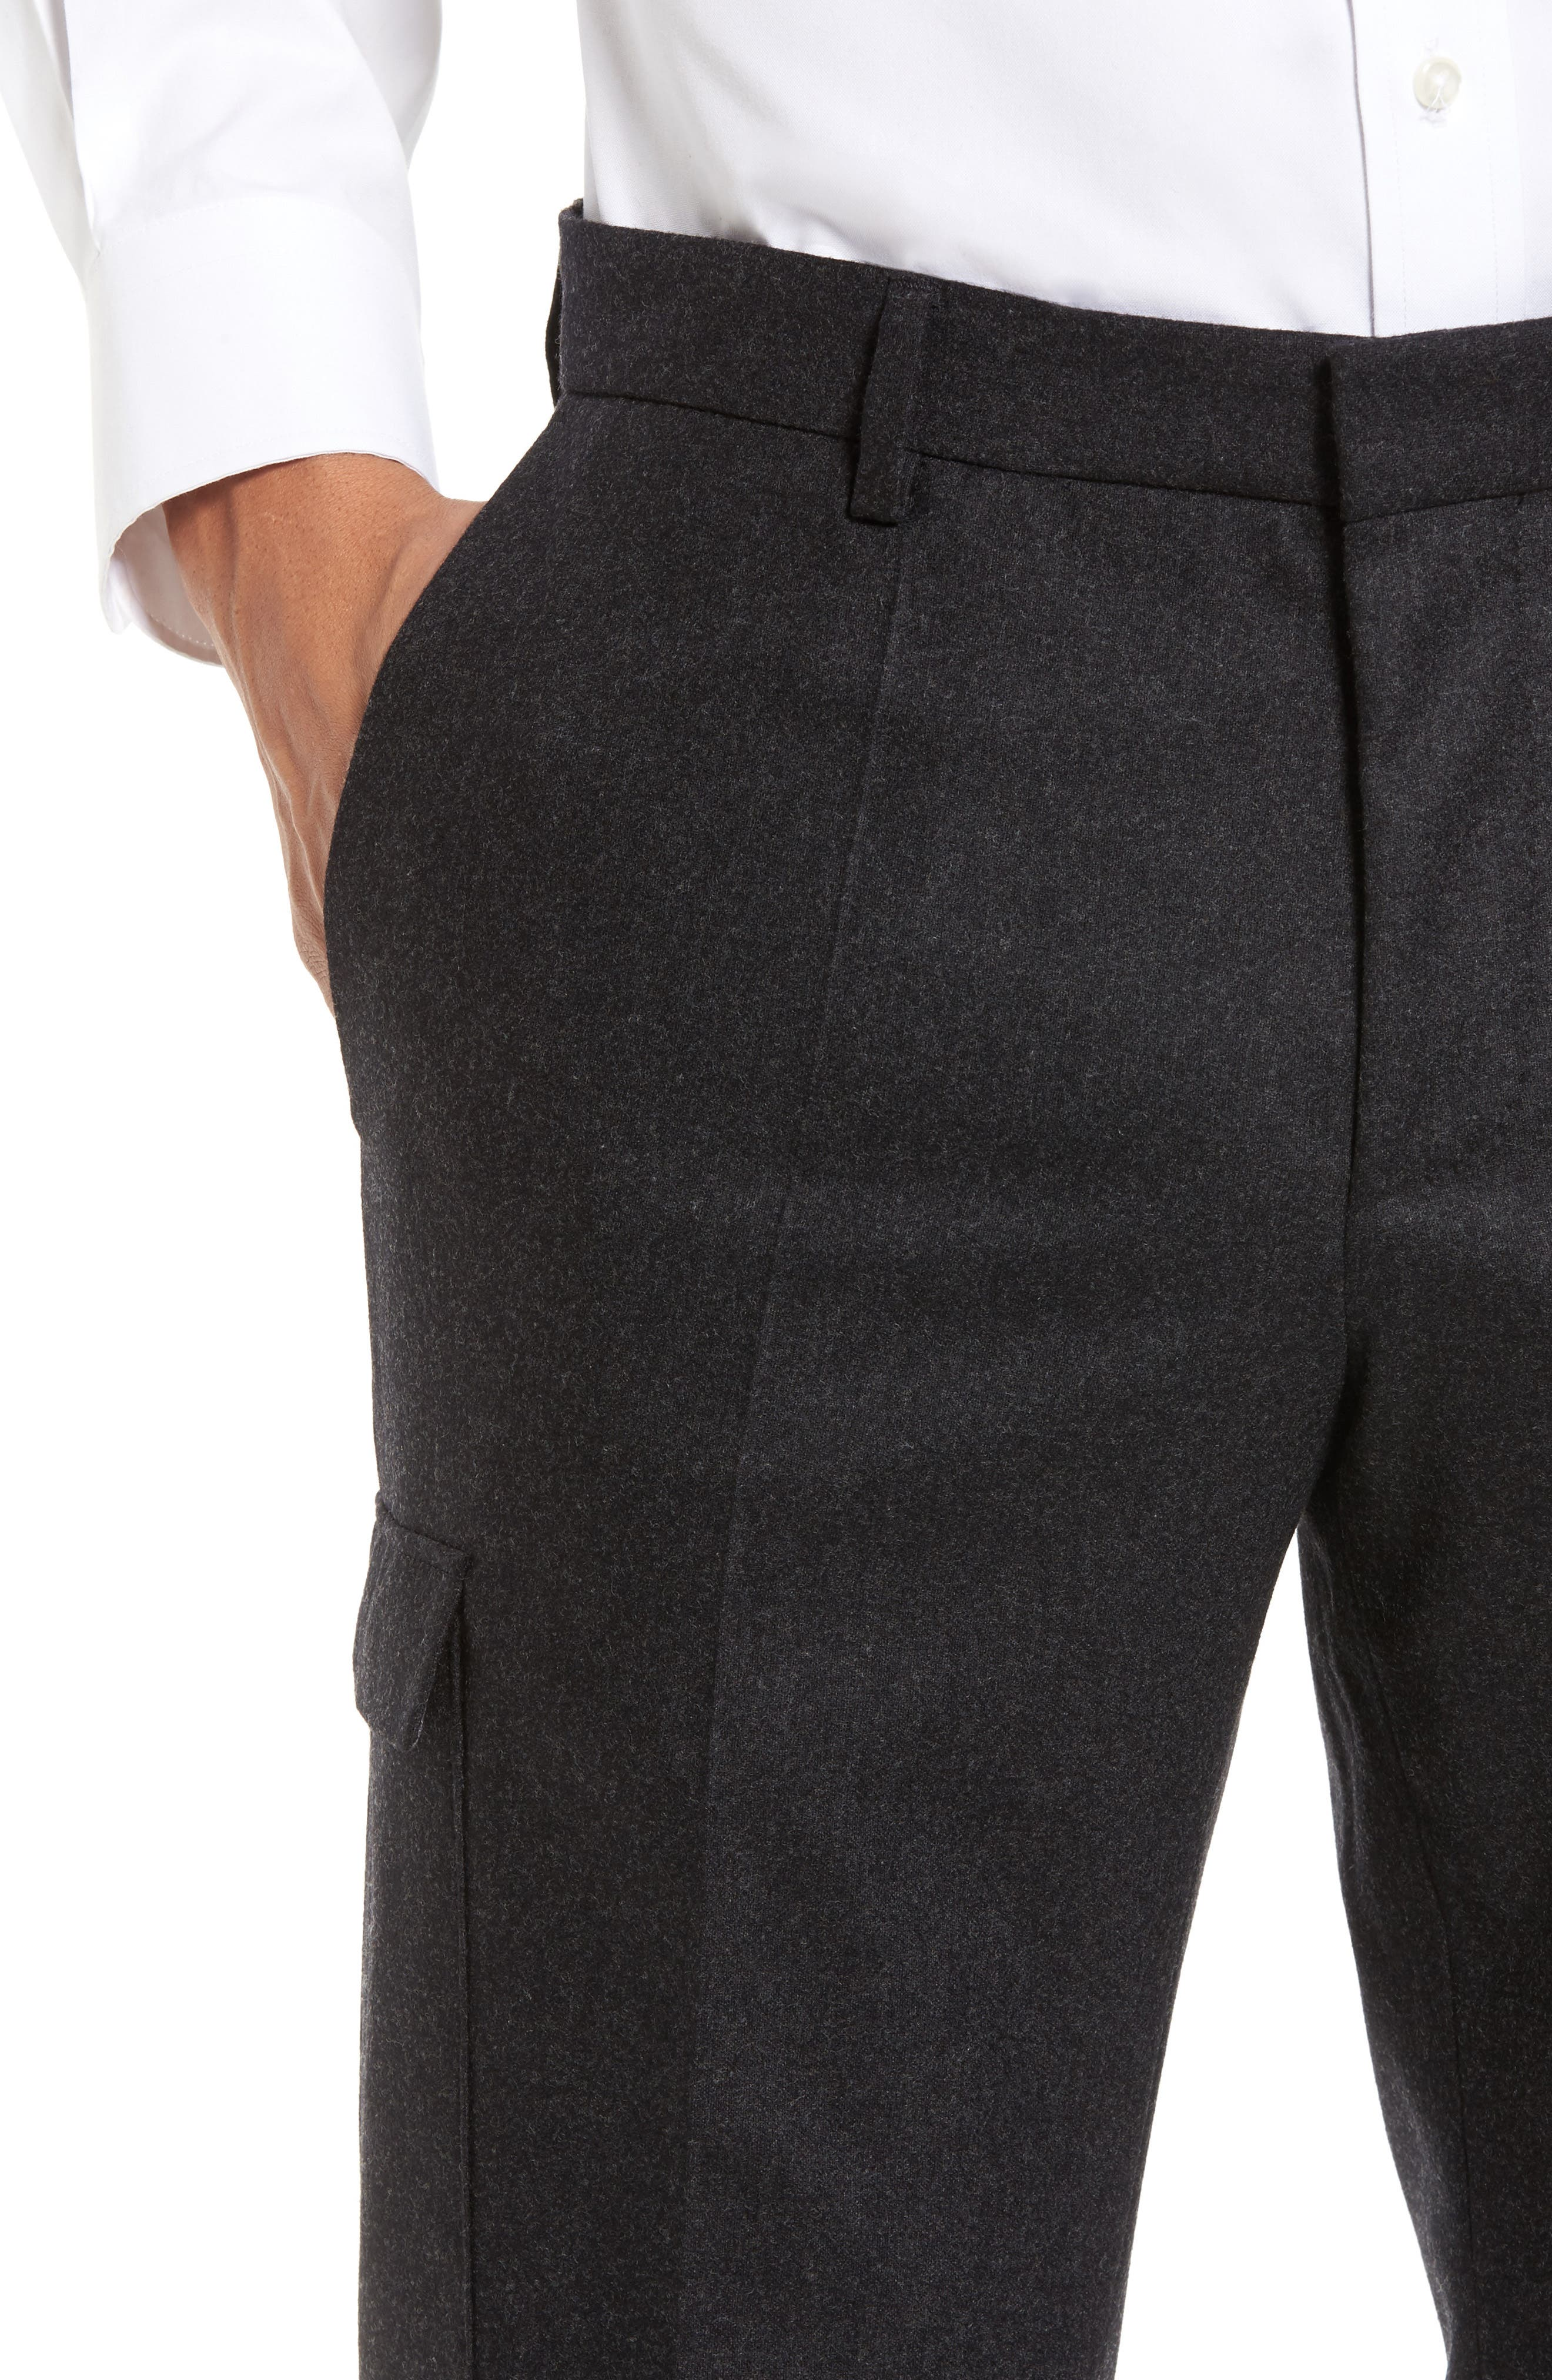 Balour Flat Front Stretch Solid Wool & Cashmere Cargo Trousers,                             Alternate thumbnail 4, color,                             Dark Grey